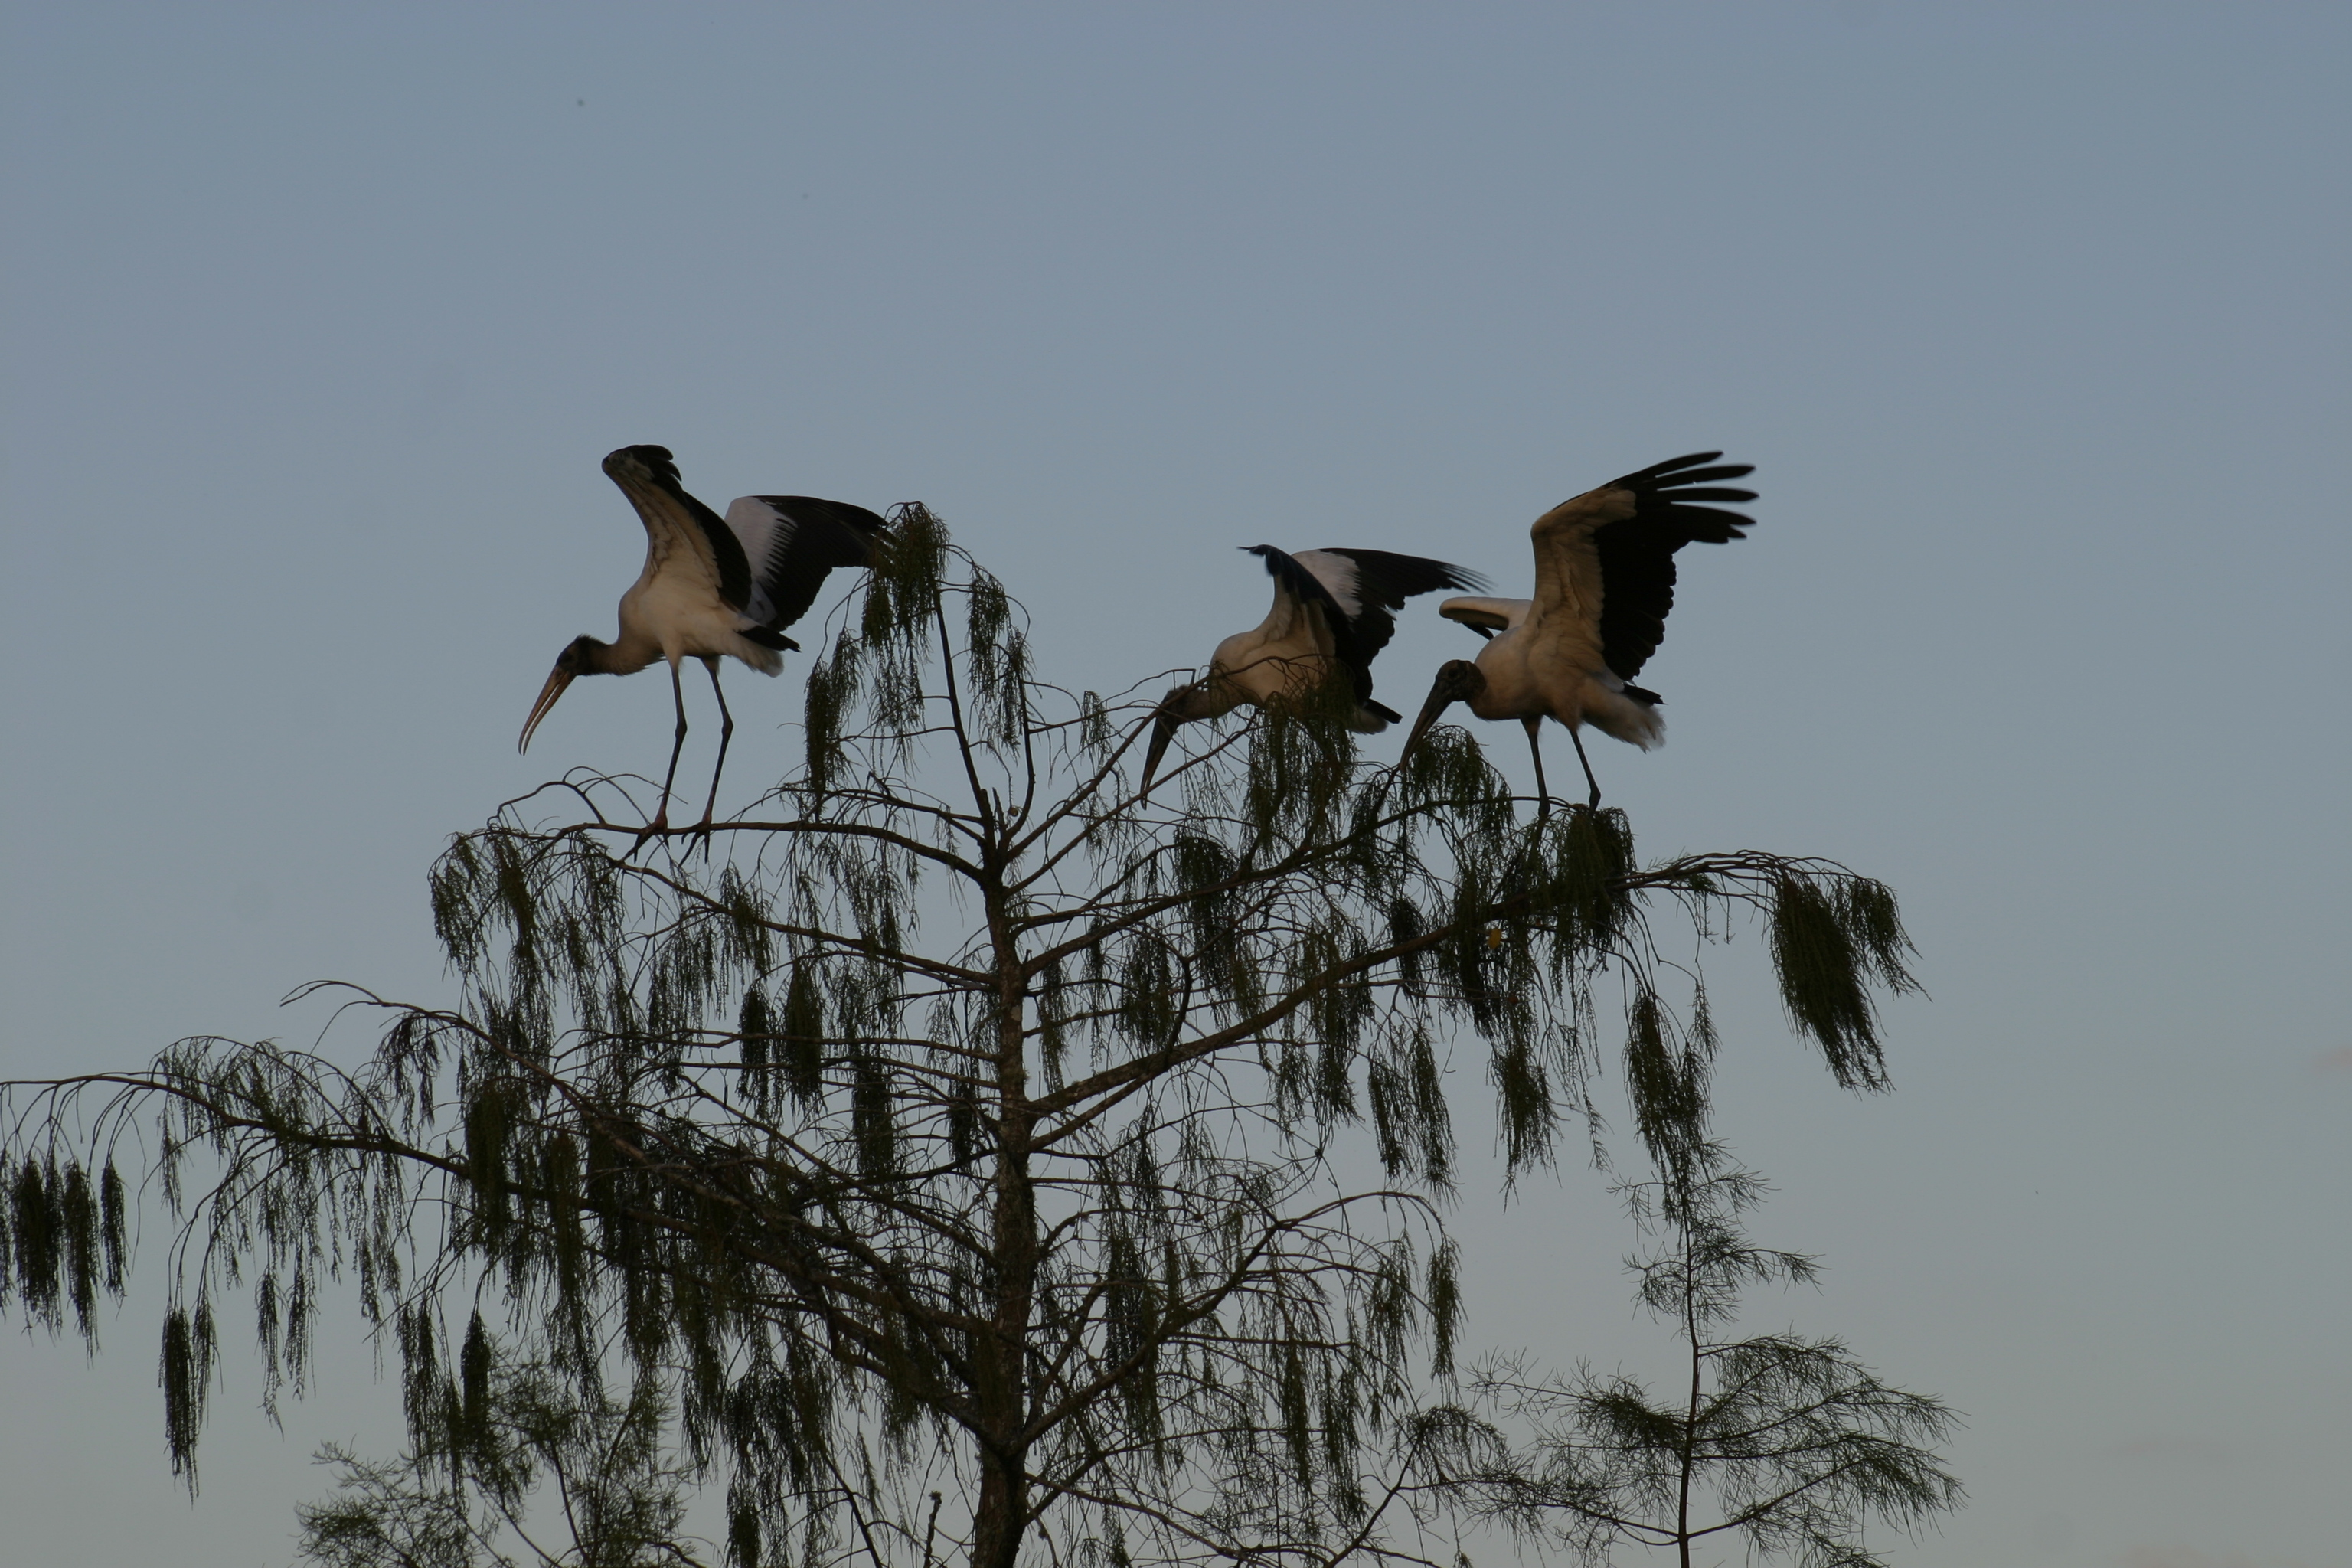 3 Woodstorks at the top of a tree